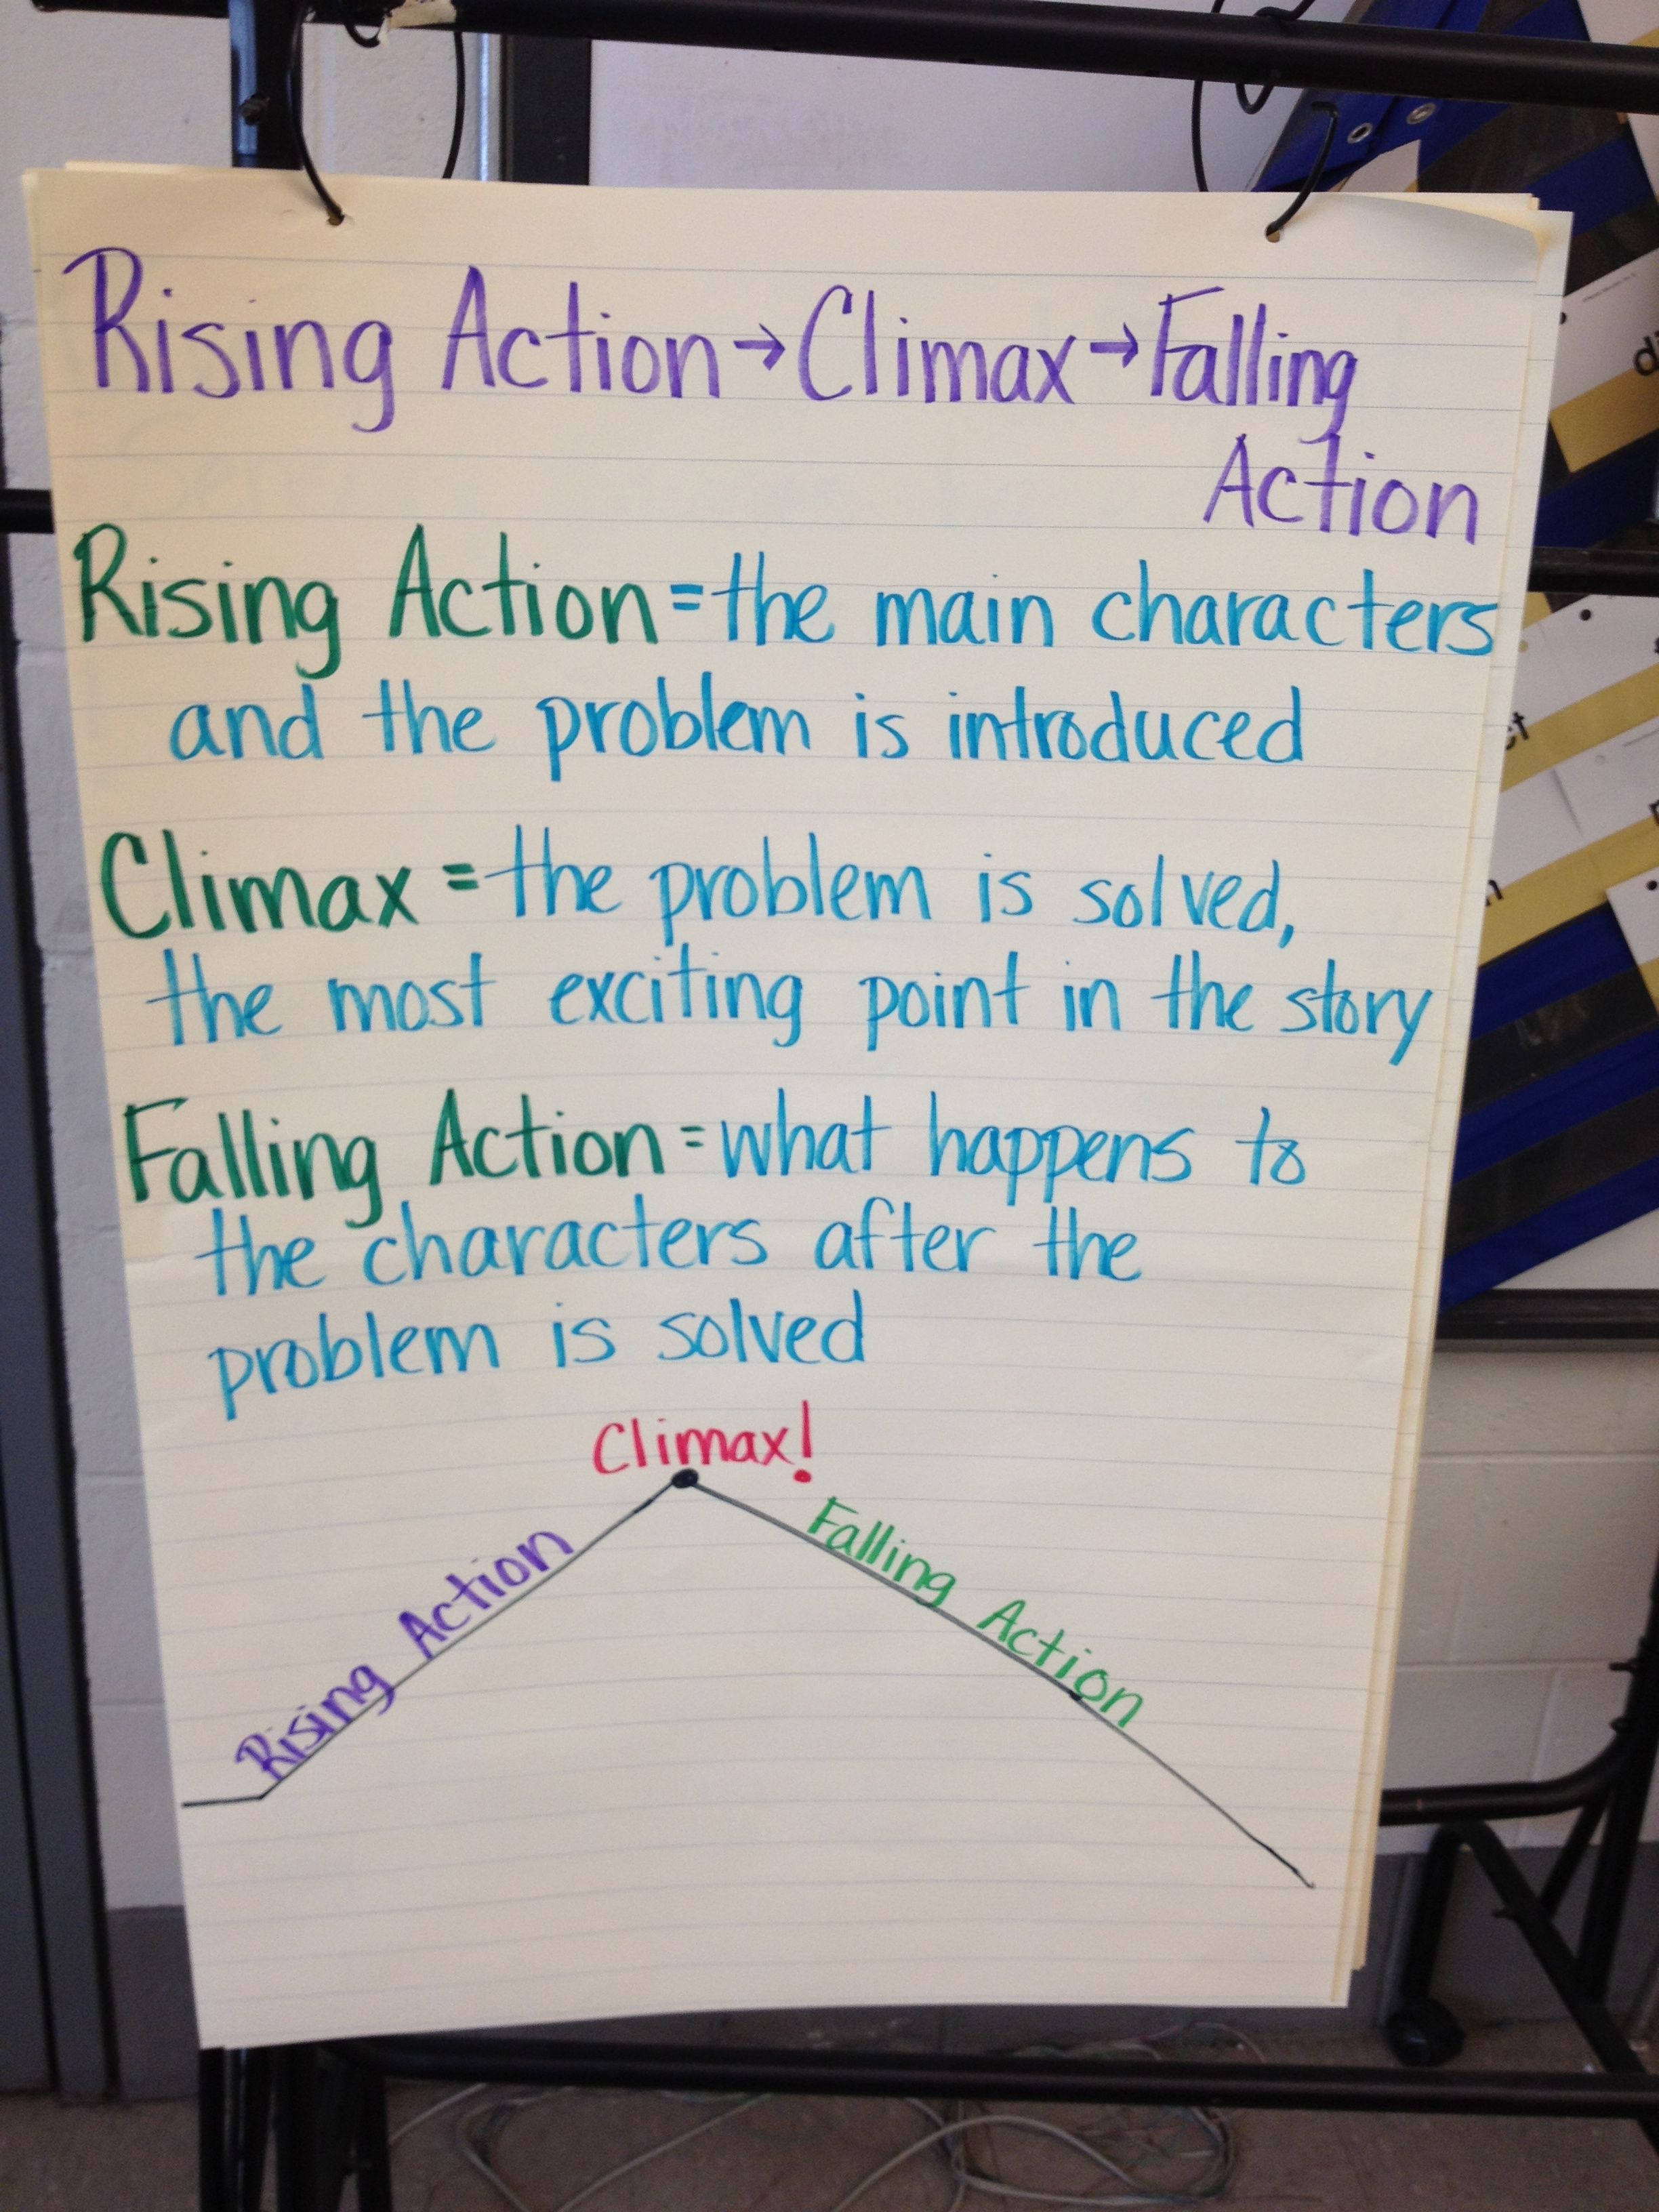 Rising Action Climax Falling Action Definitions